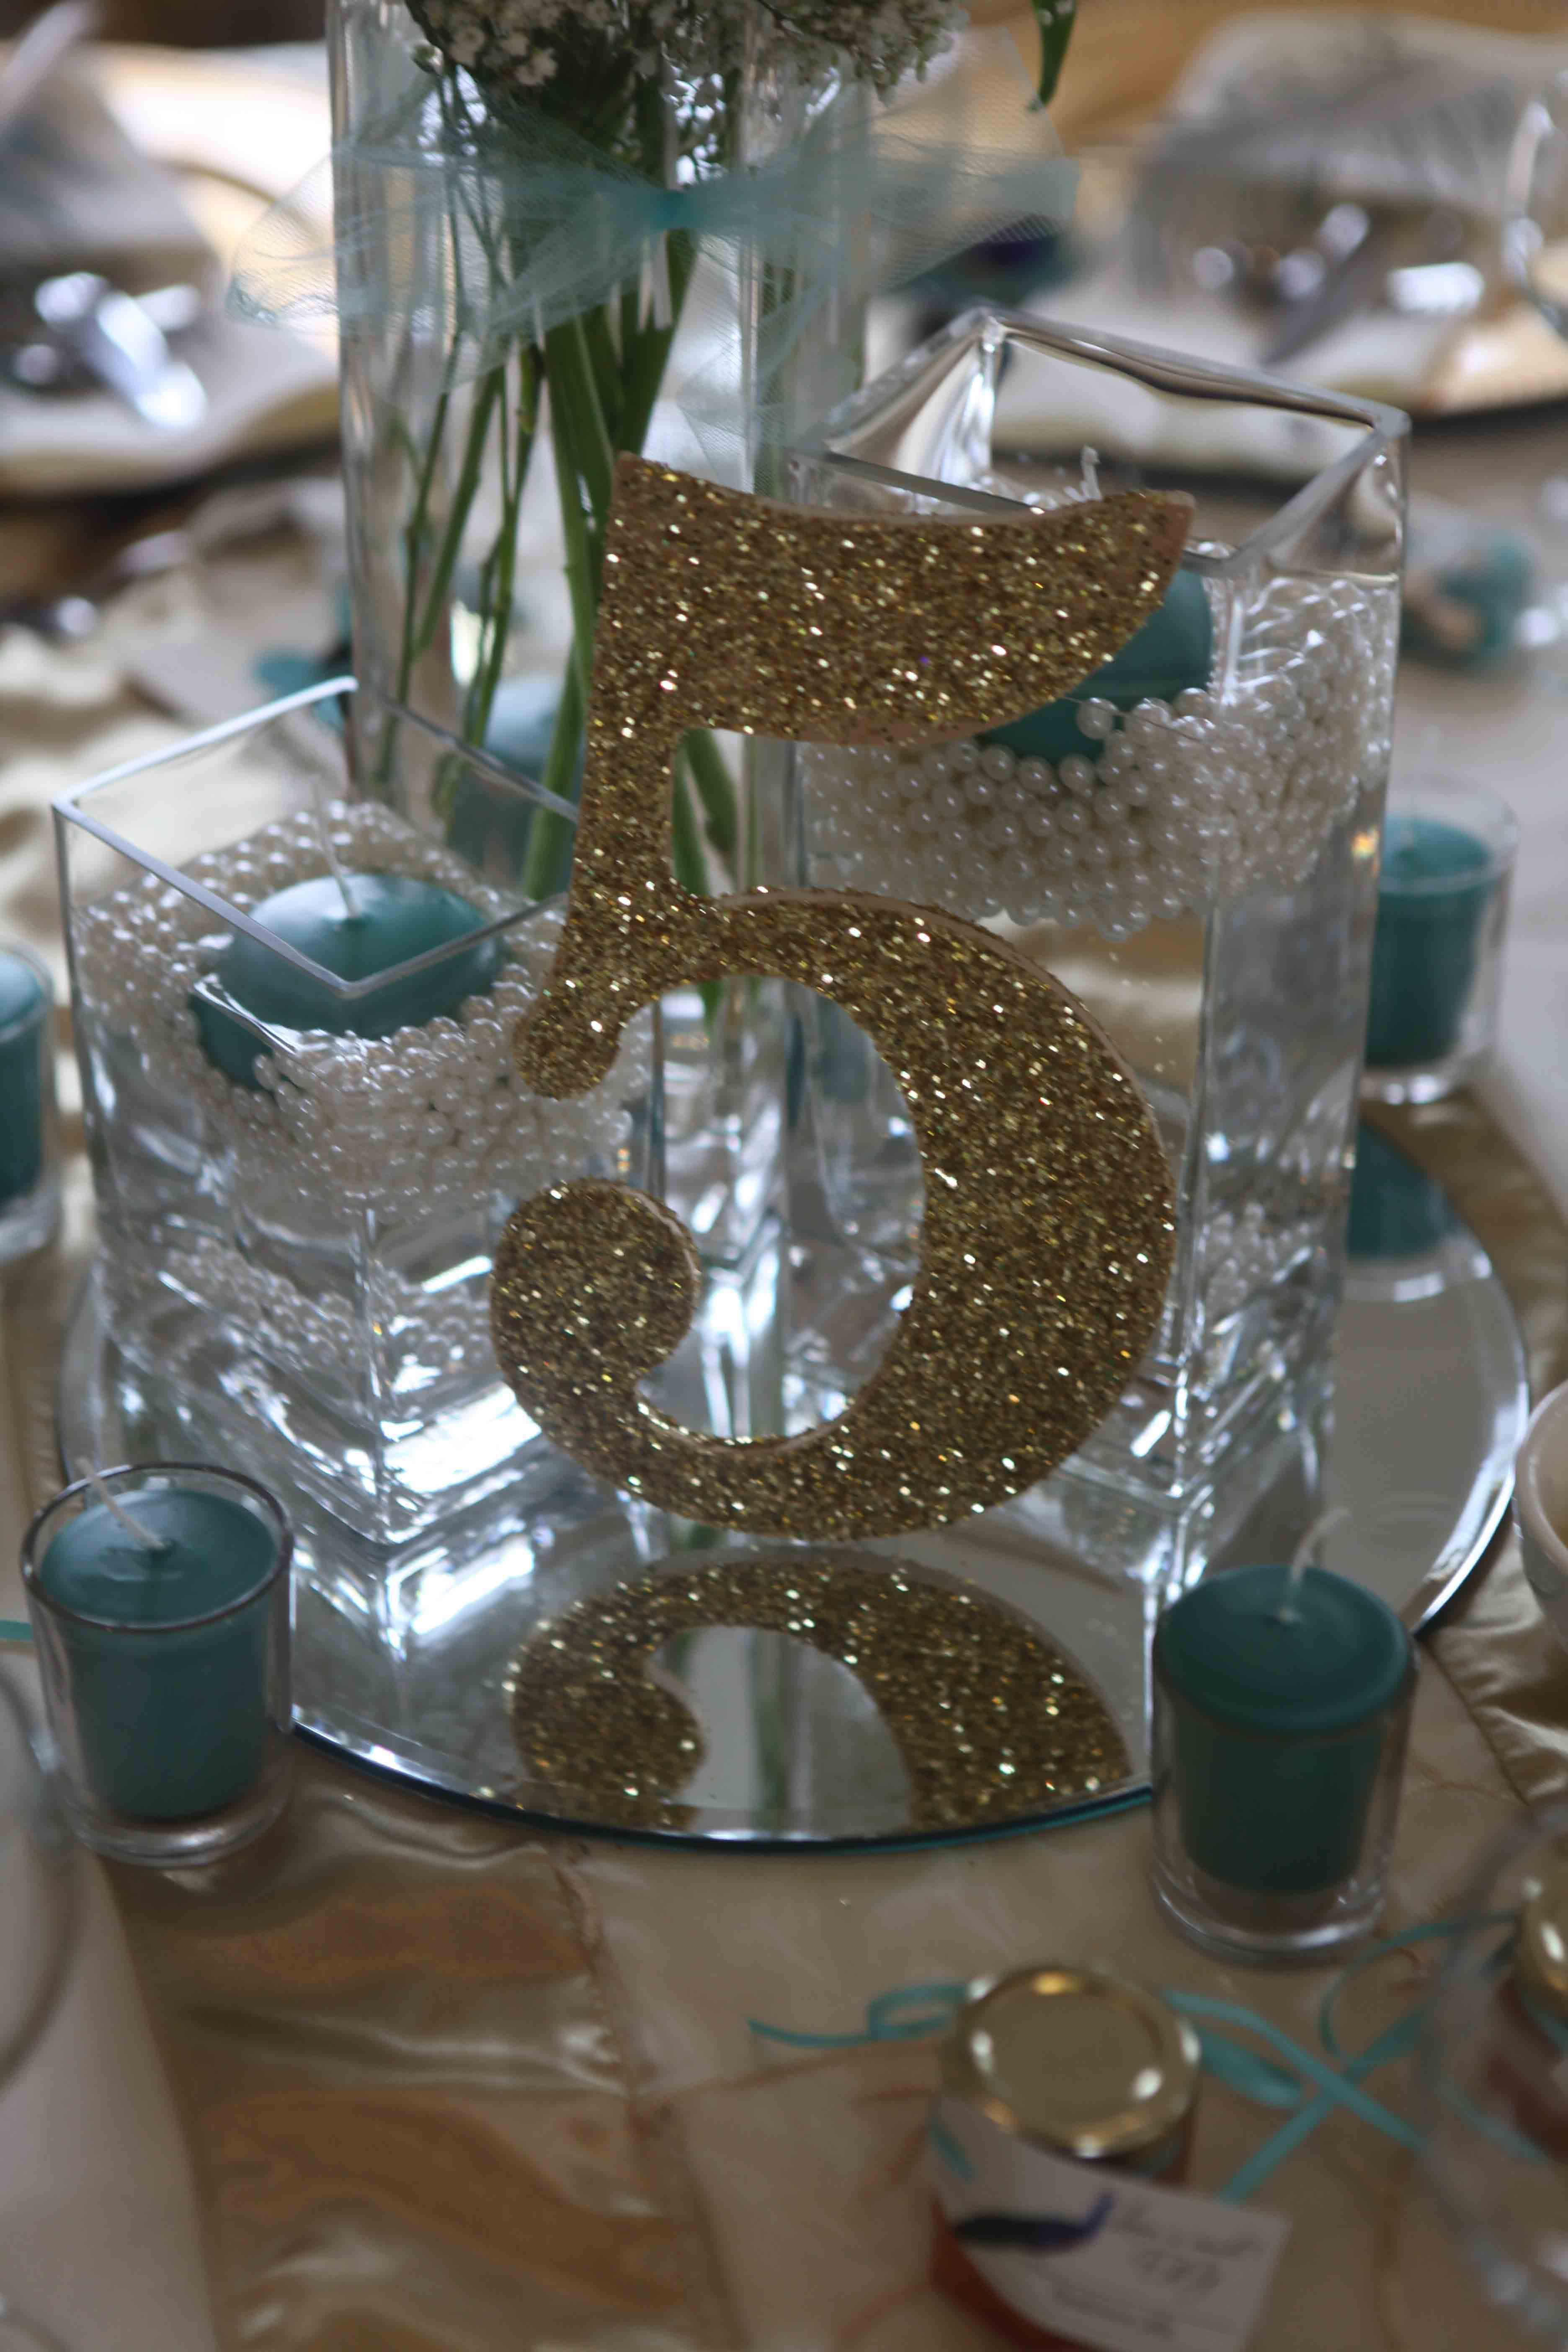 Table decor centerpieces included rectangular glass vases from davids bridal in 3 sizes filled with pearl filler from save on crafts water and floating